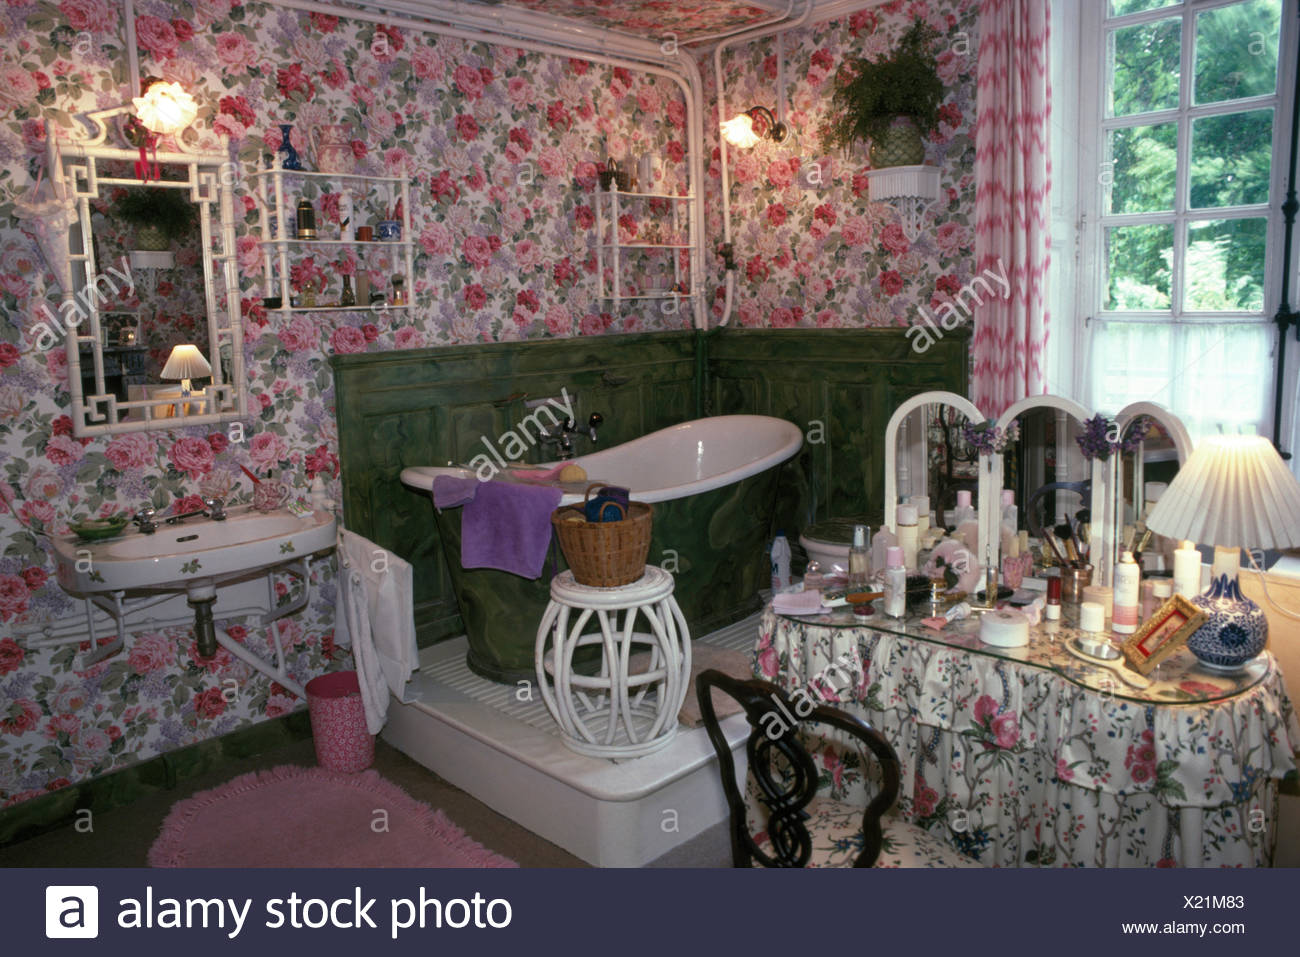 Slipper bath on small platform in corner of eighties bathroom with rose patterned wallpaper - Stock Image